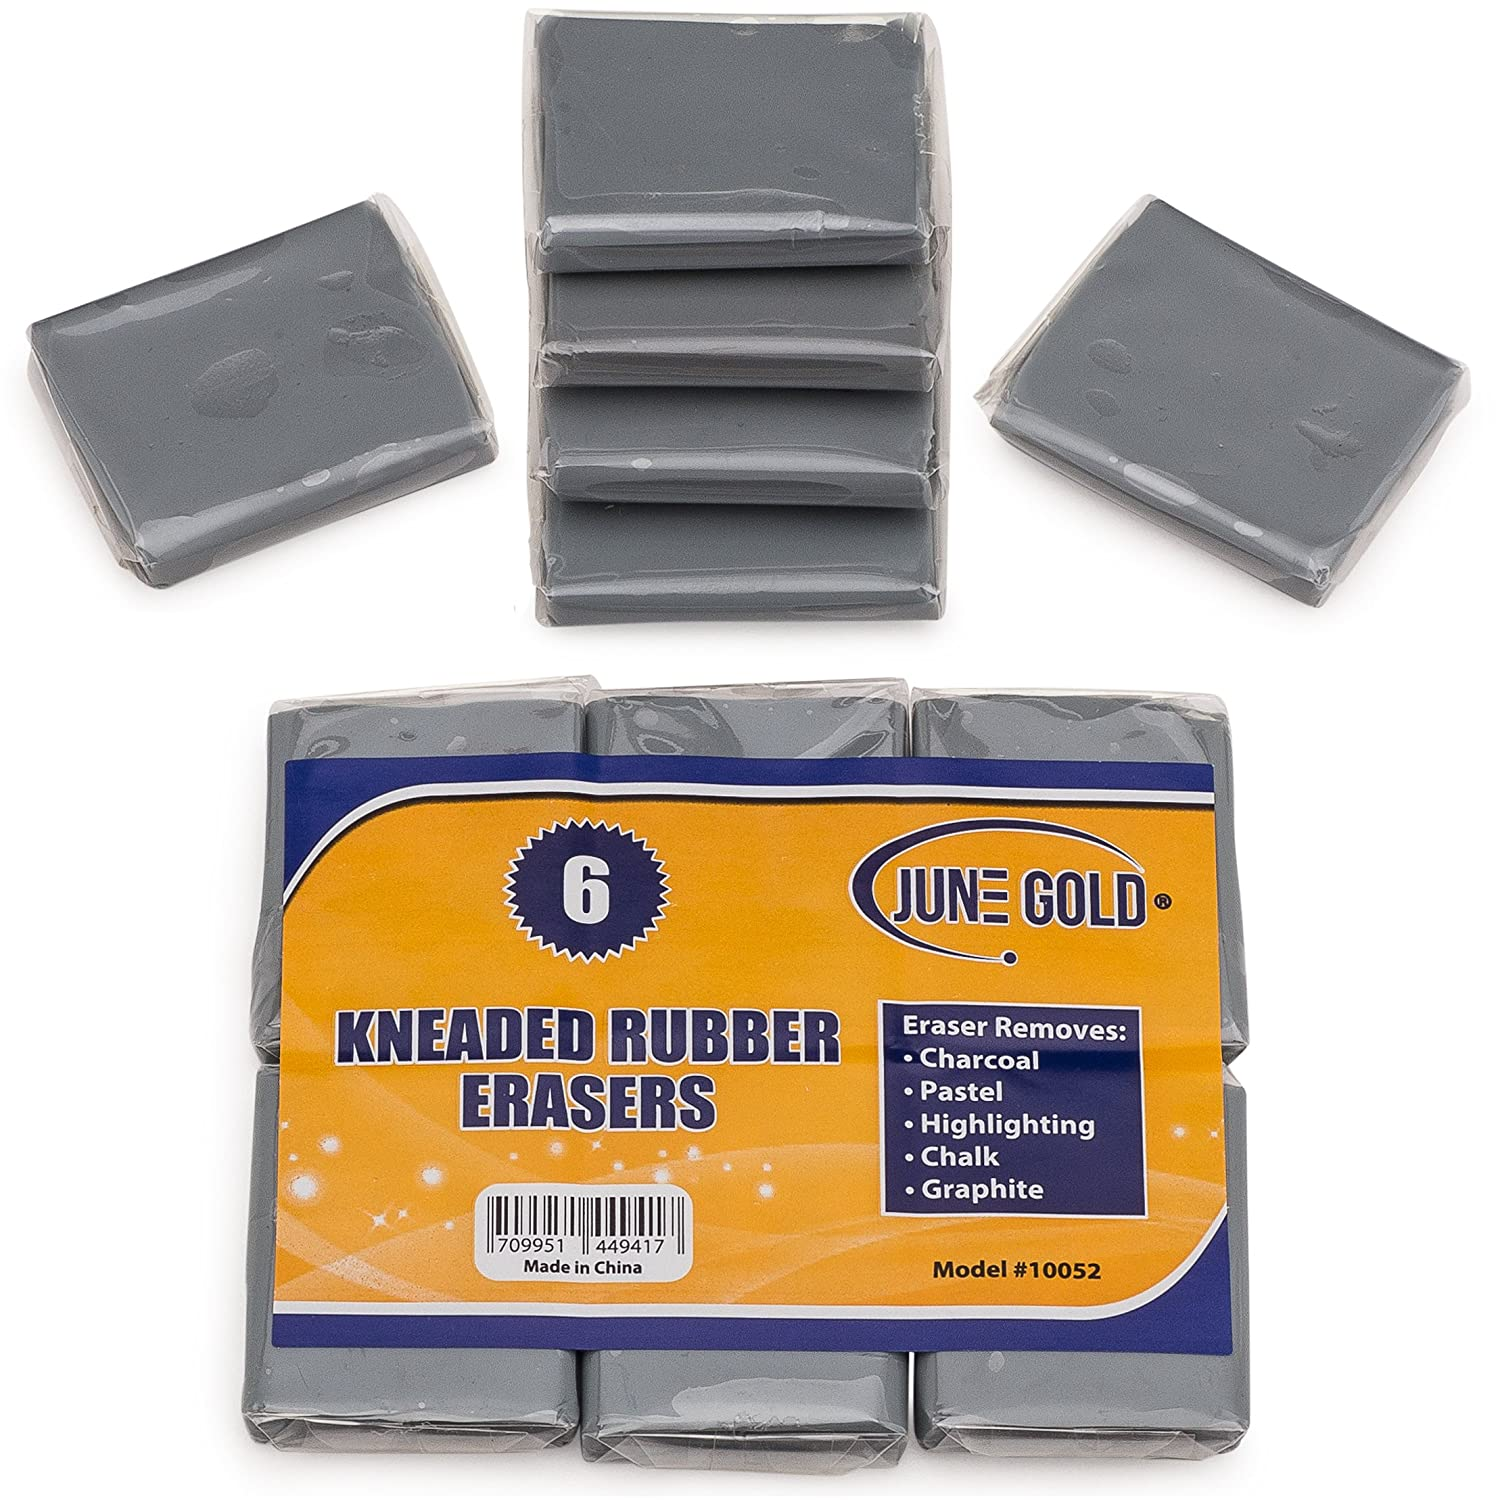 June Gold Kneaded Rubber Erasers (6 Pack) - Blend, Shade, Smooth, Correct, and Brighten Your Sketches and Drawings 4336950583